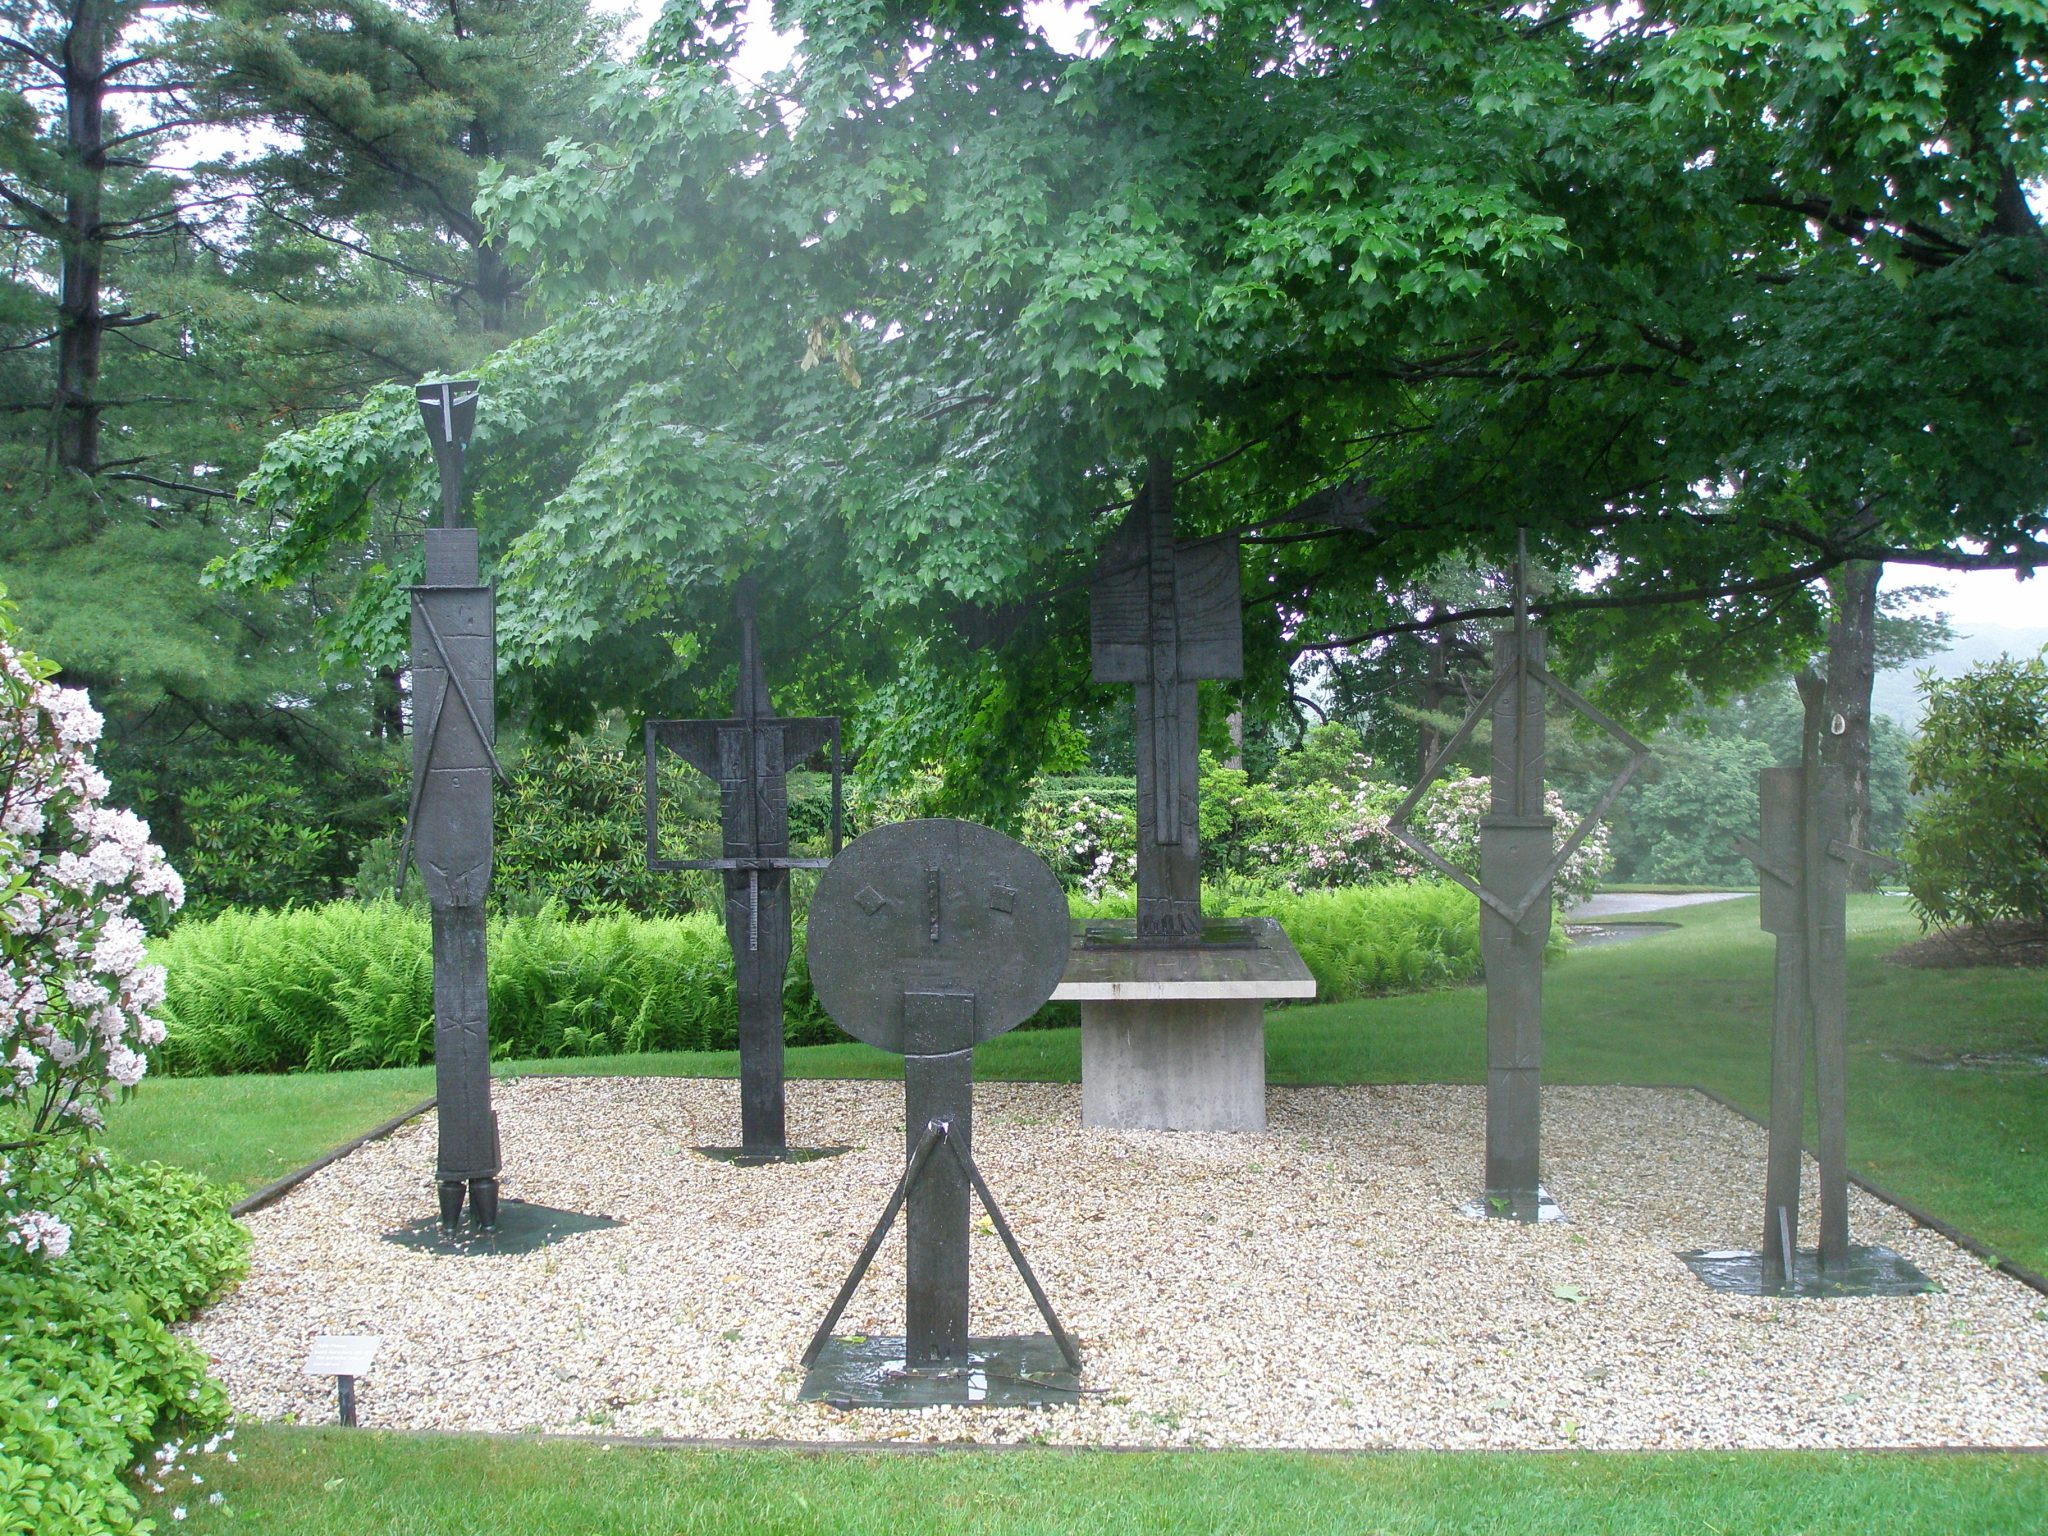 And near the Brook Garden, on the Tennis Lawn, is Pablo Picacco's THE BATHERS (1956-57)